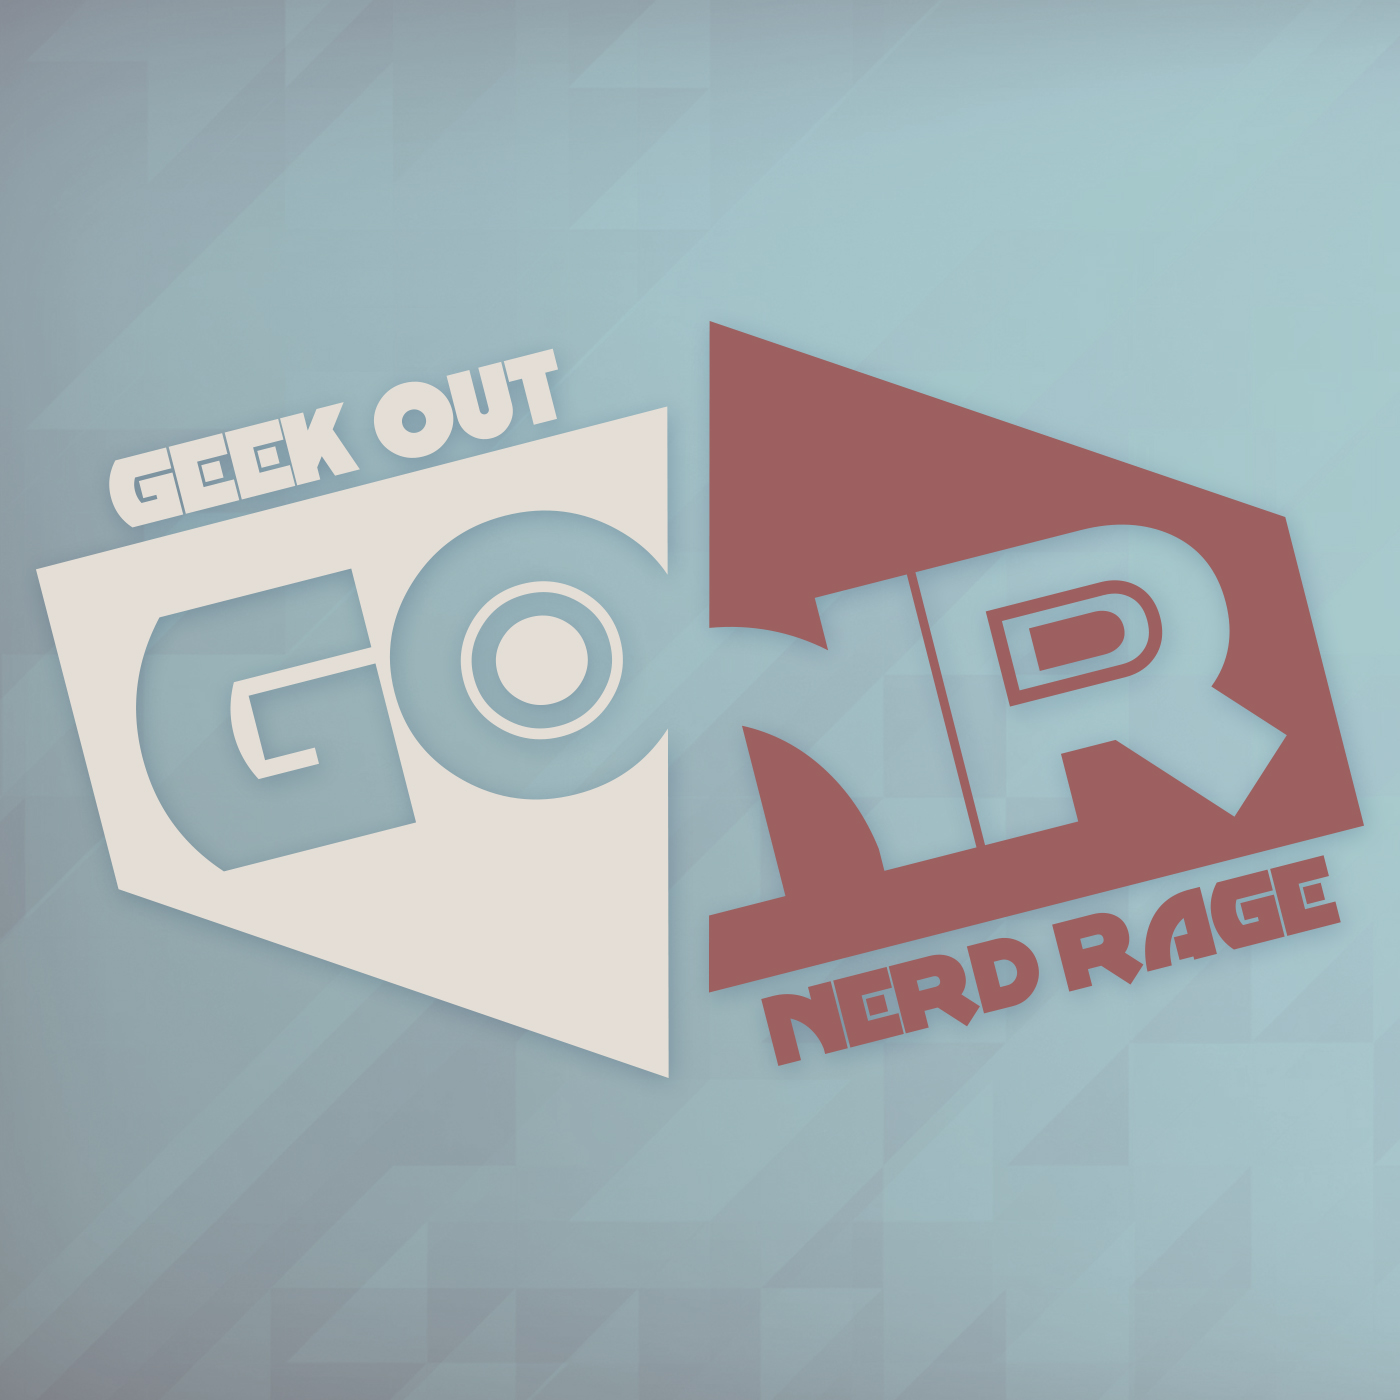 Geek Out/Nerd Rage